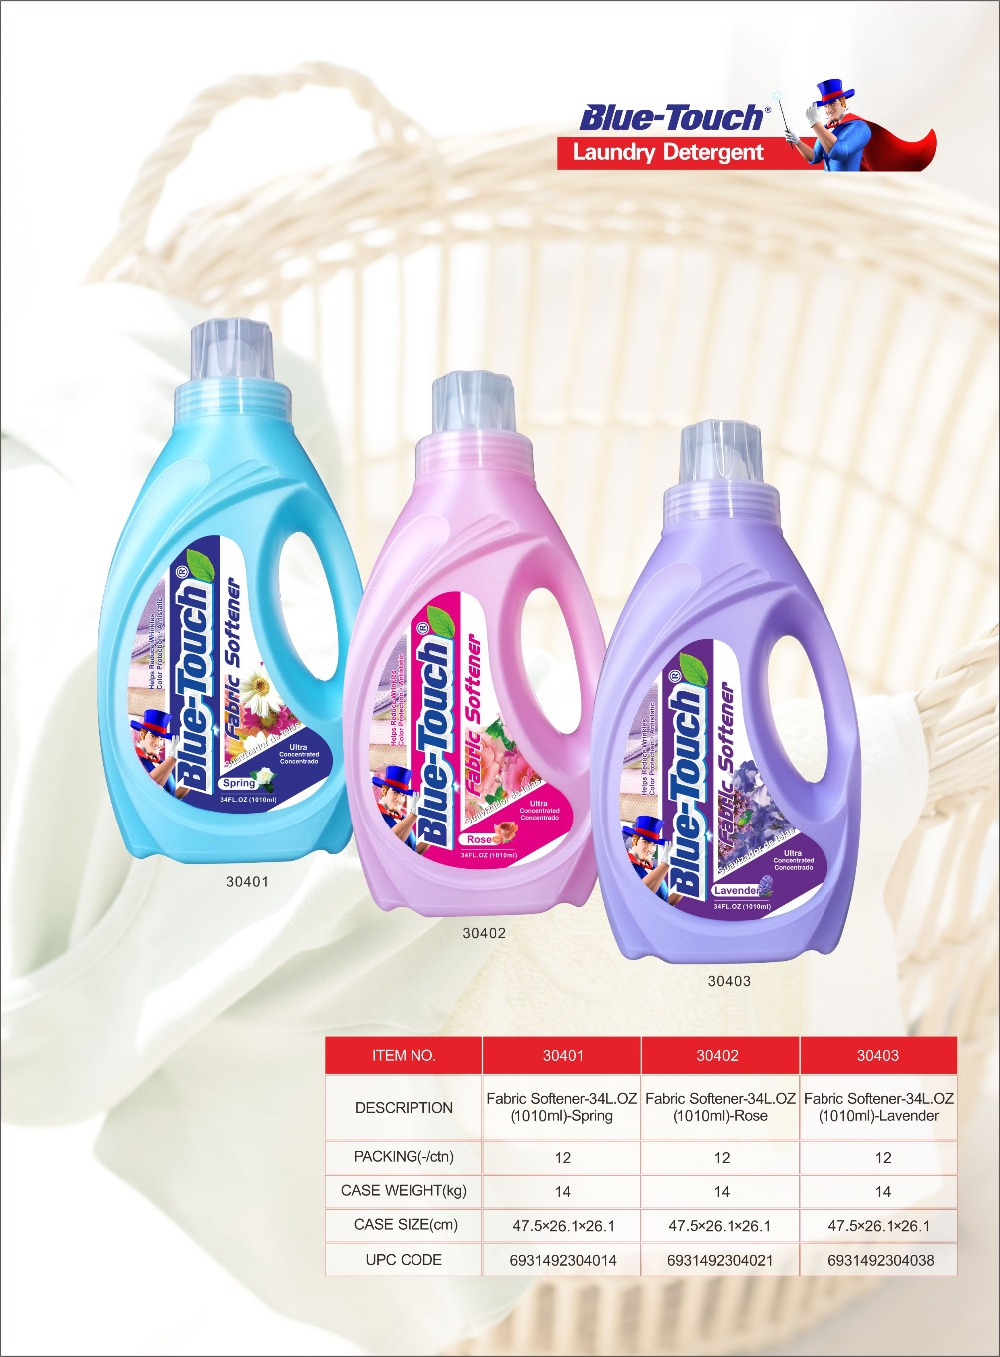 Fabric Refresher & Softener for clothes LAVENDER ROSE SPRING